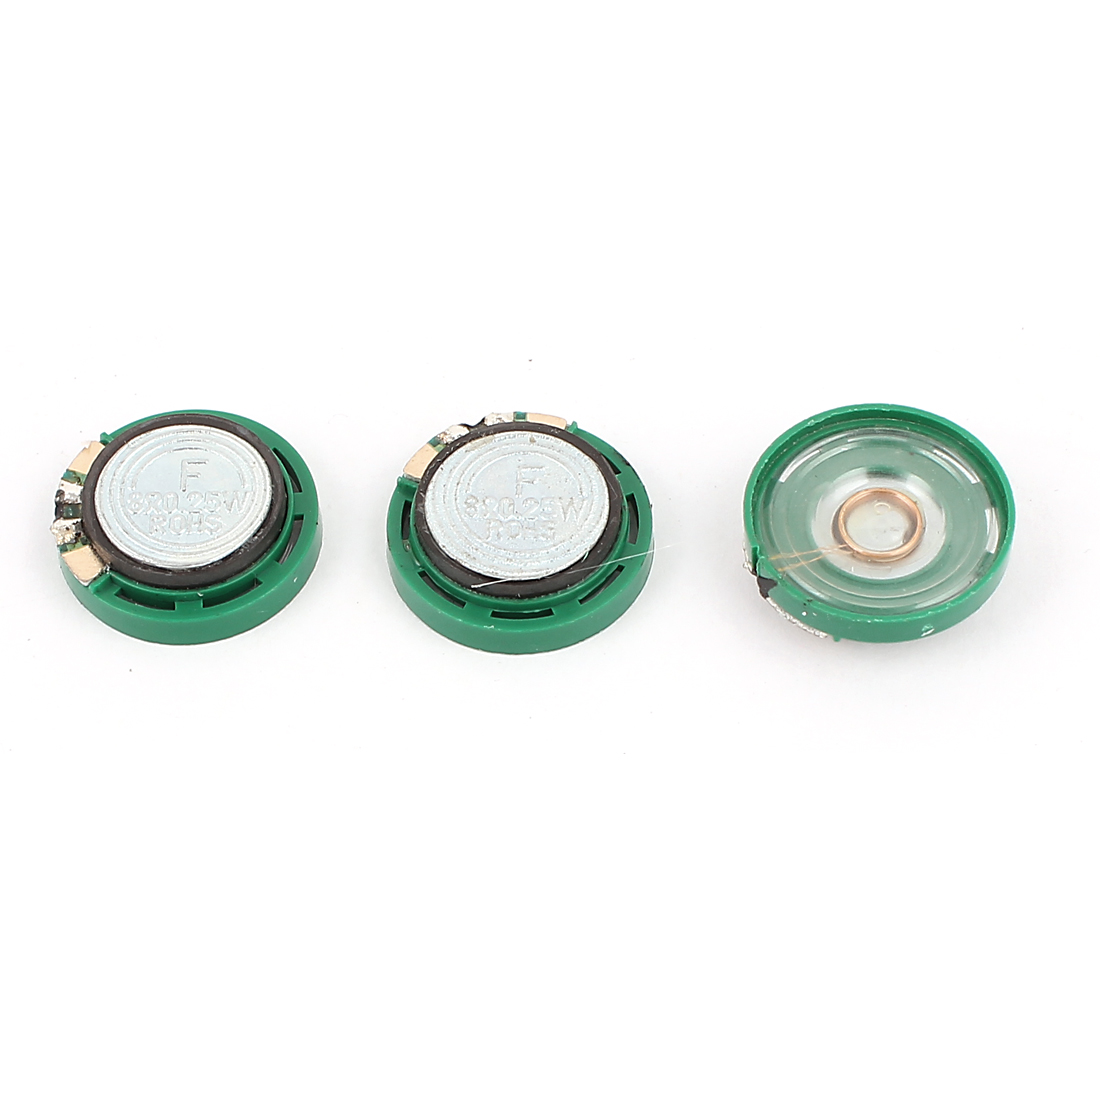 3 Pcs 0.25W 8 Ohm 21mm Dia Green Magnet Speaker Loudspeaker Horn